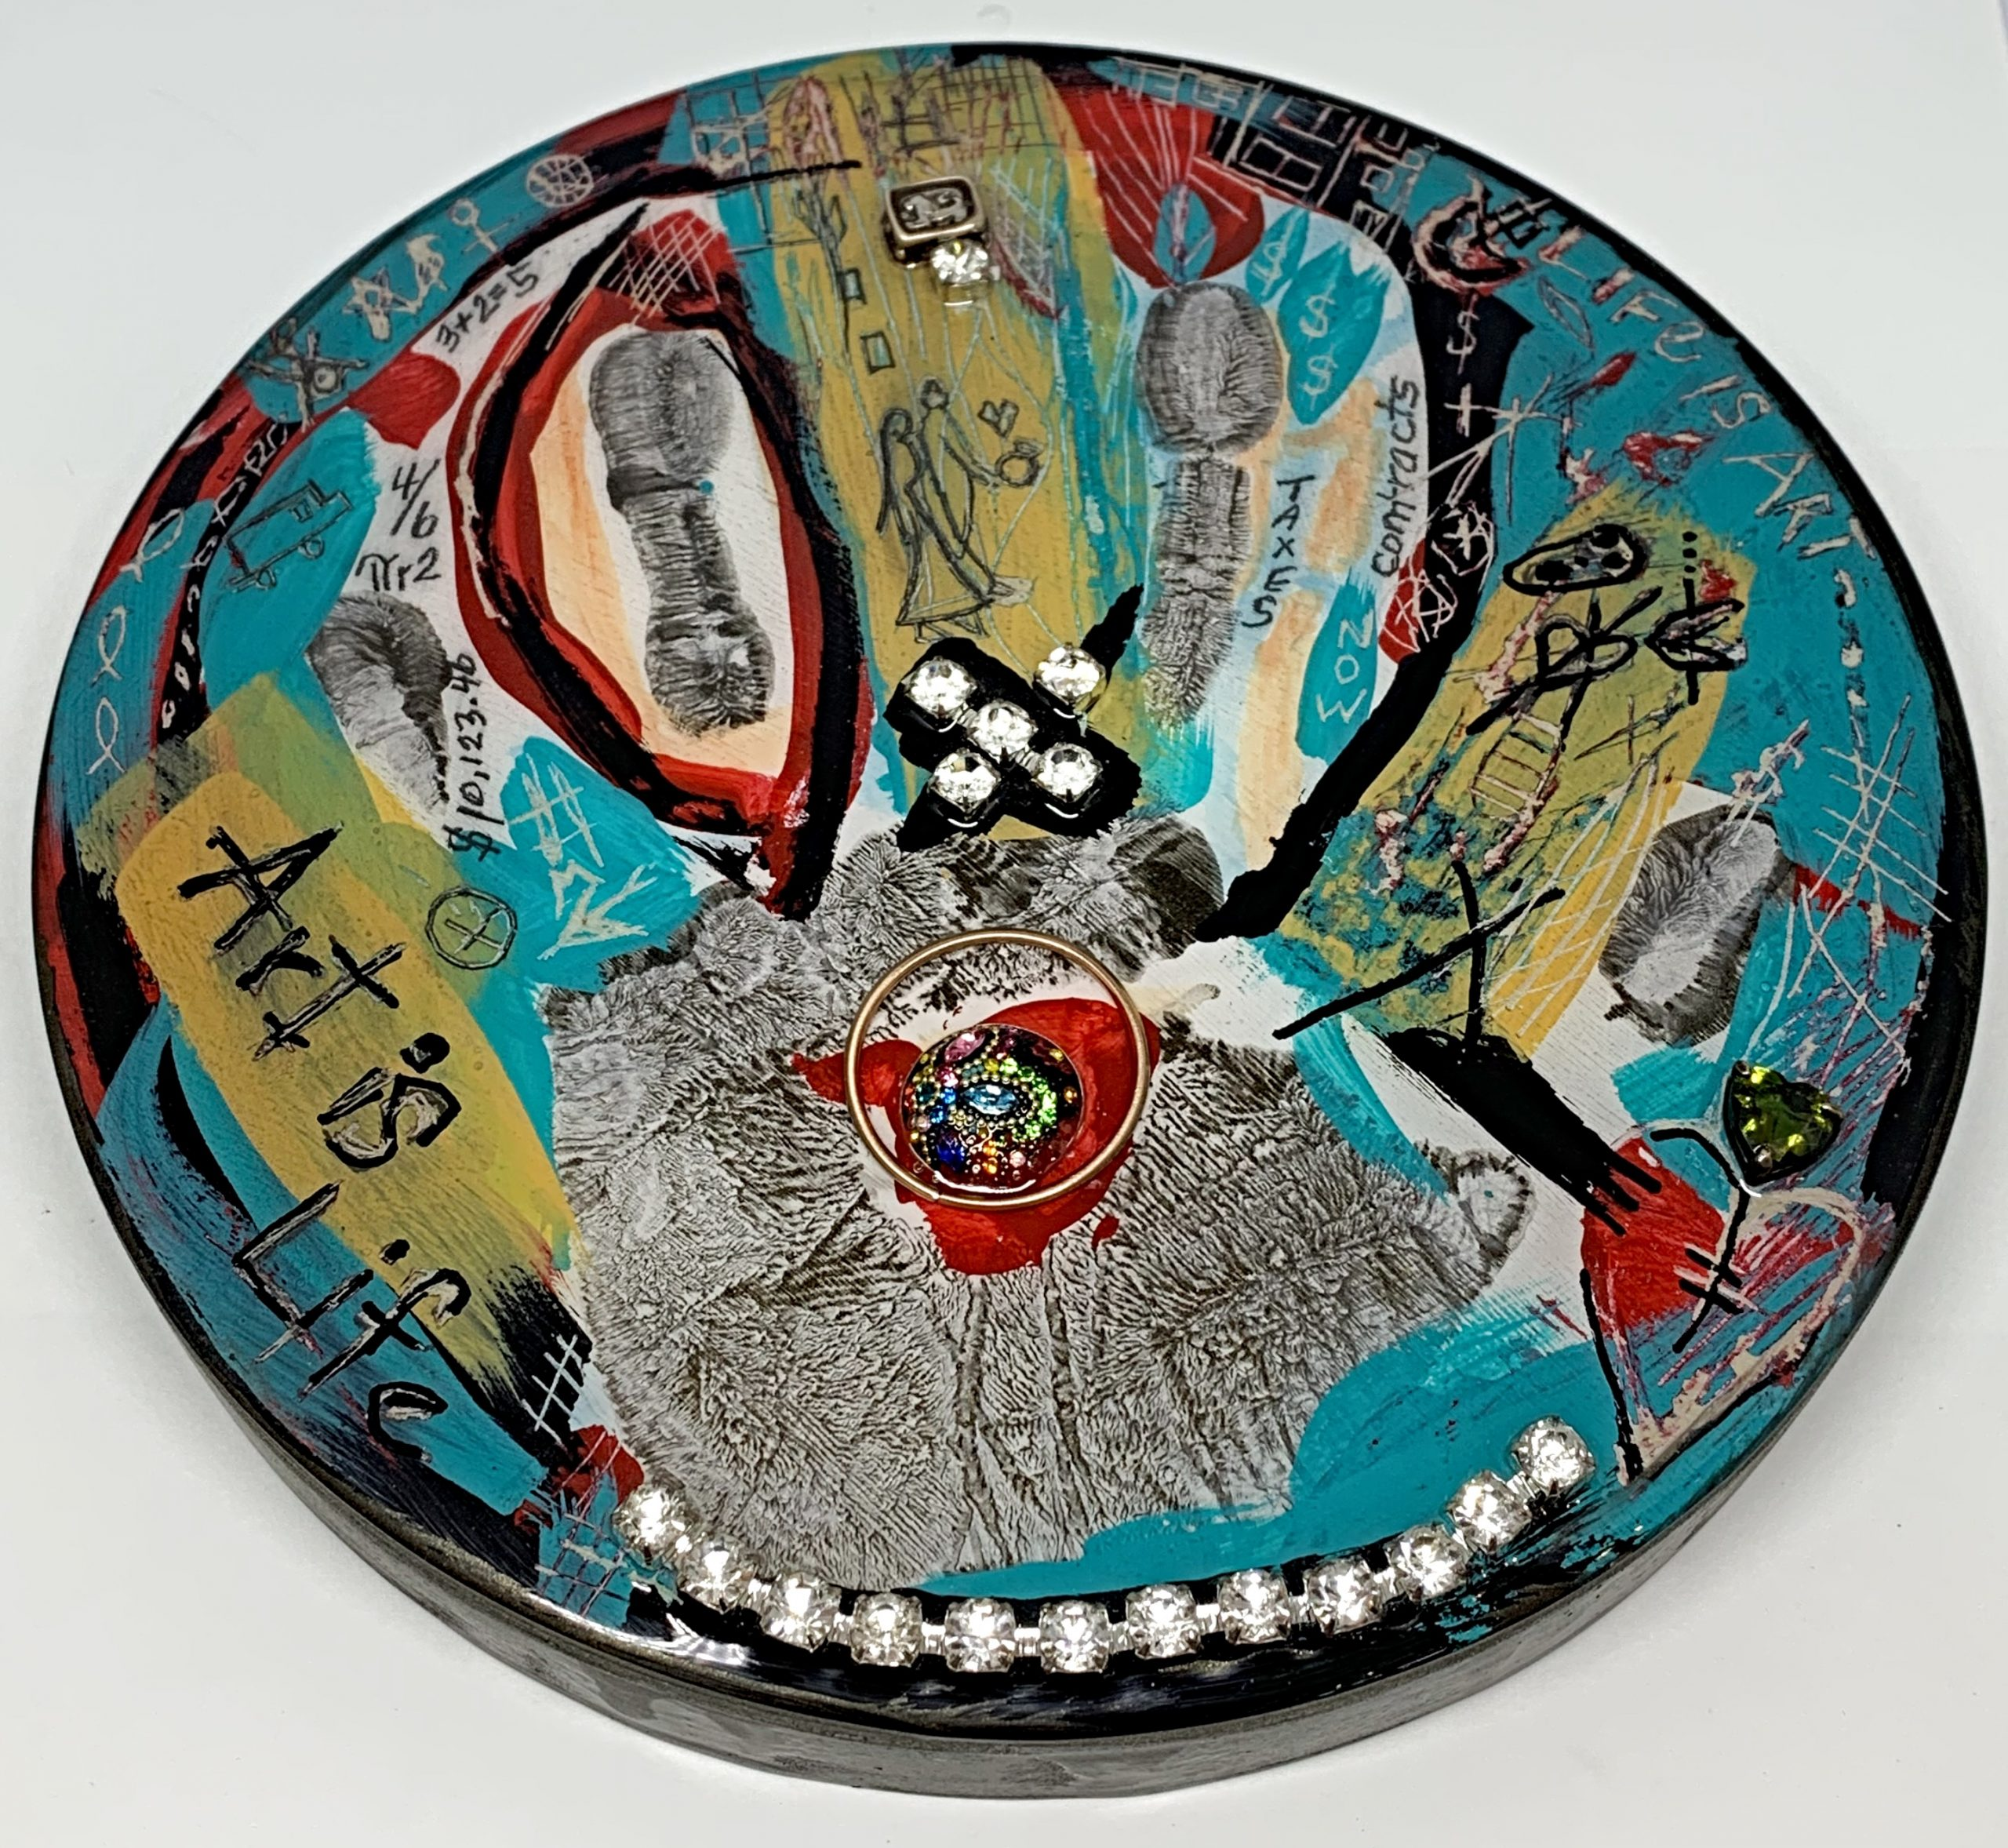 Palm Reader, mixed media painting by Karyn Chopik | Effusion Art Gallery + Cast Glass Studio, Invermere BC